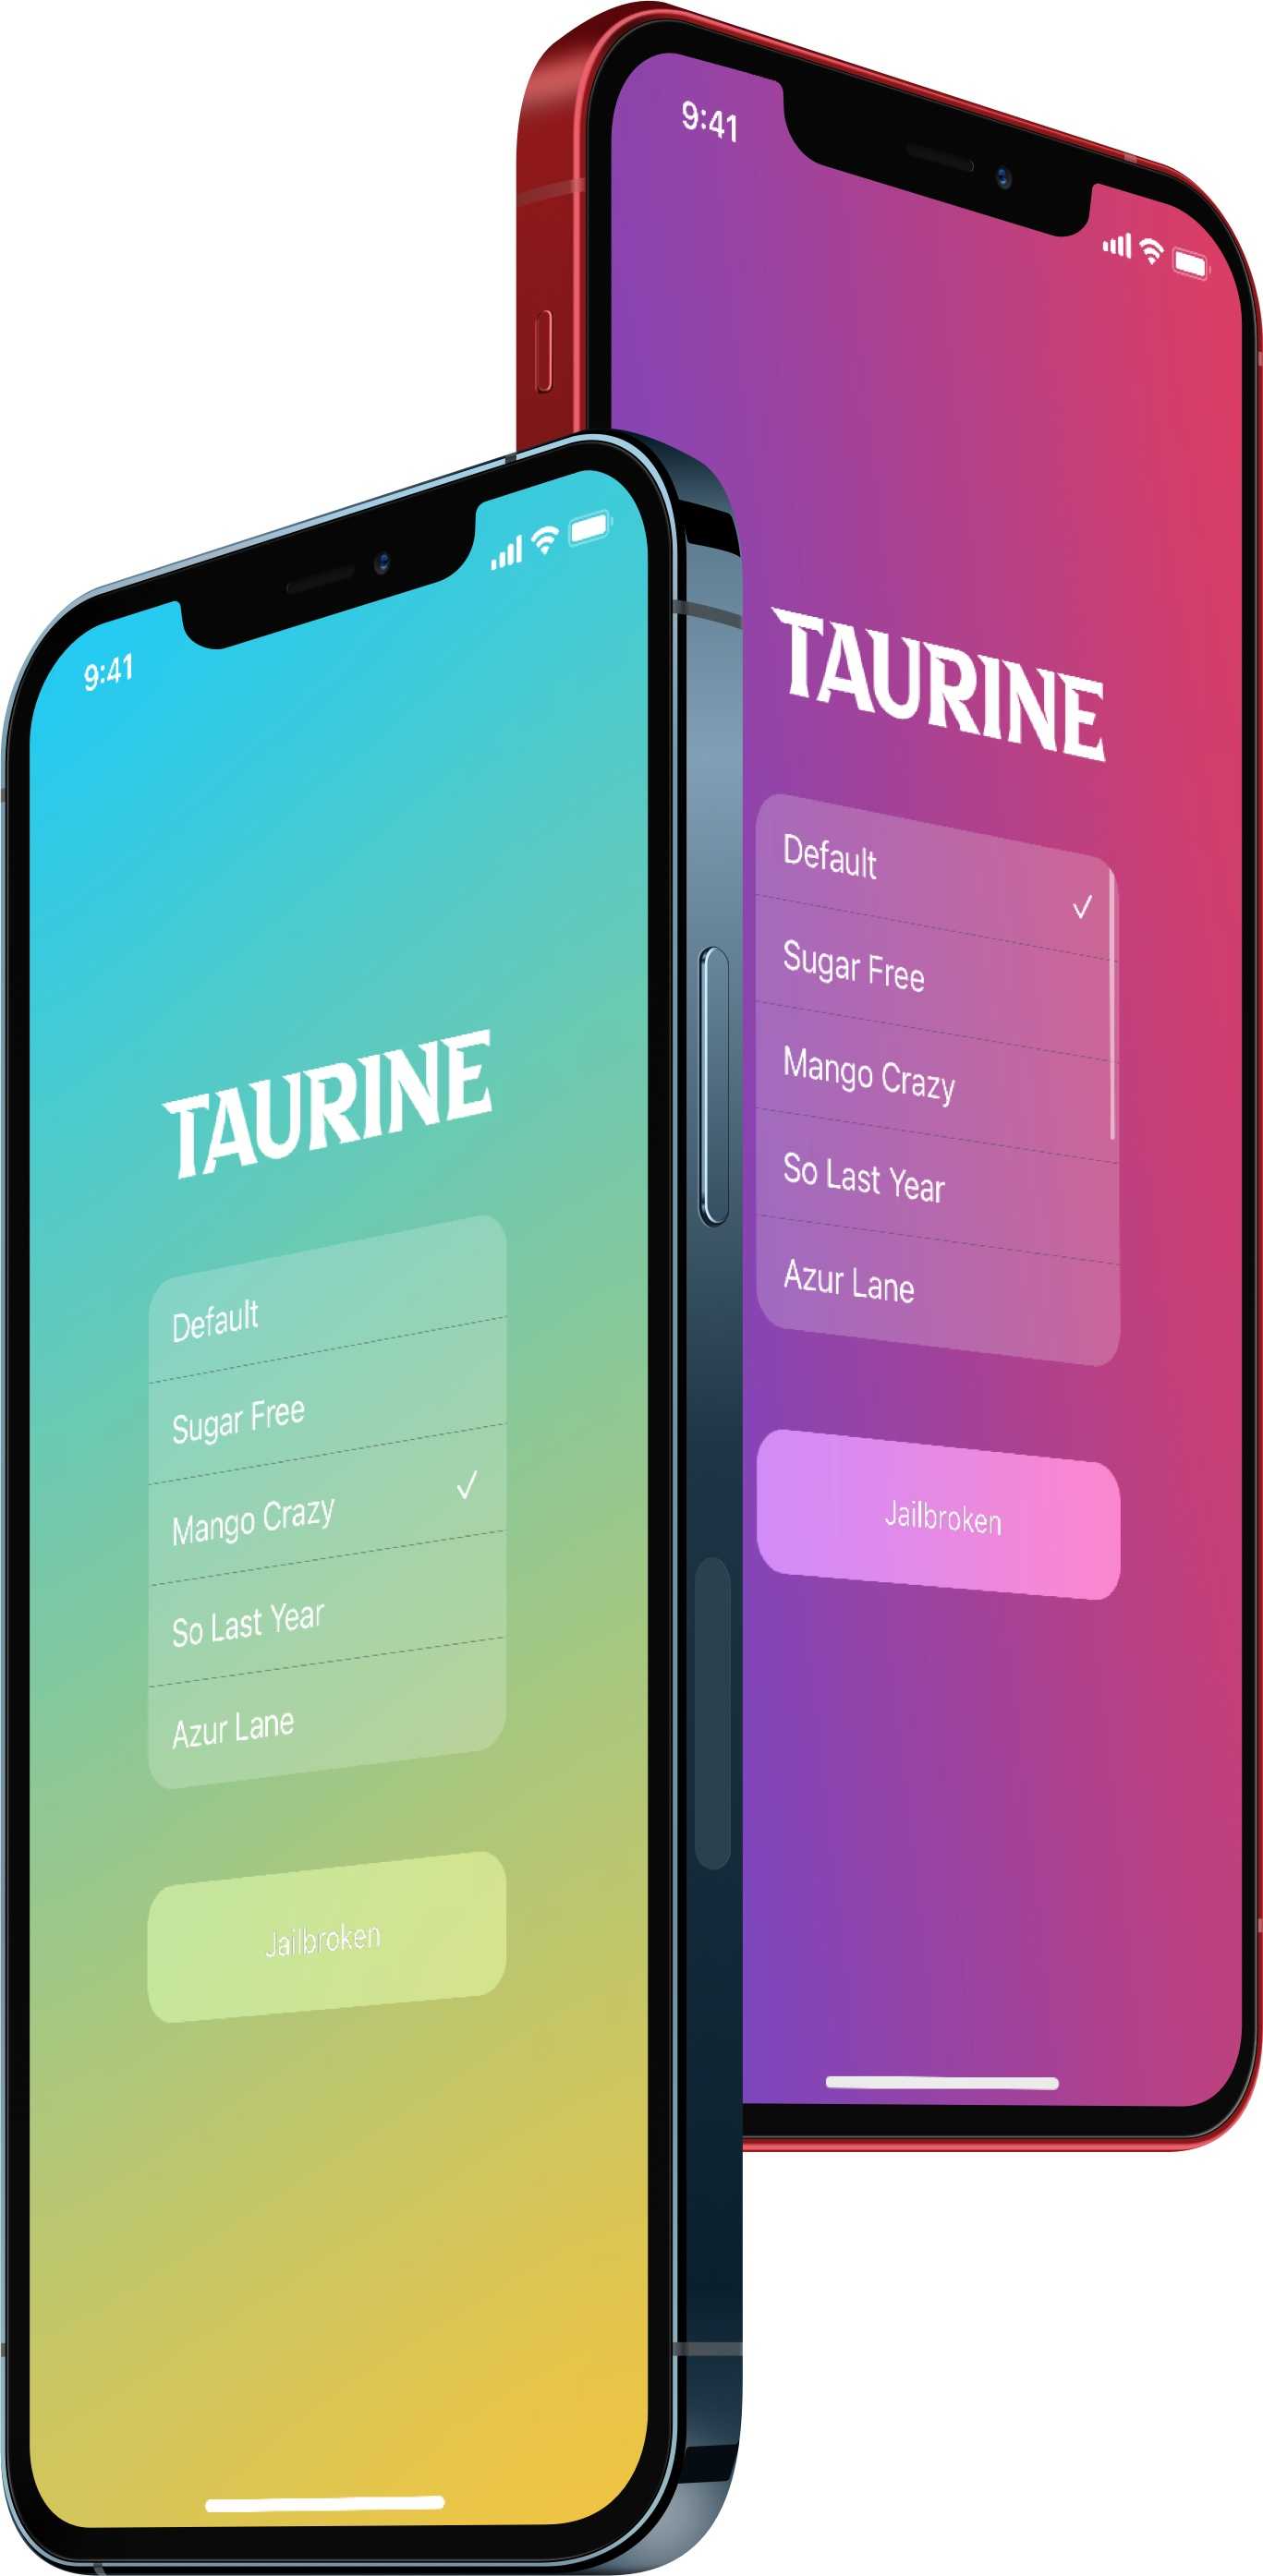 Taurine jailbreak for iOS 14.0-14.3 updated to v1.0.3 with CarPlay improvements and other fixes